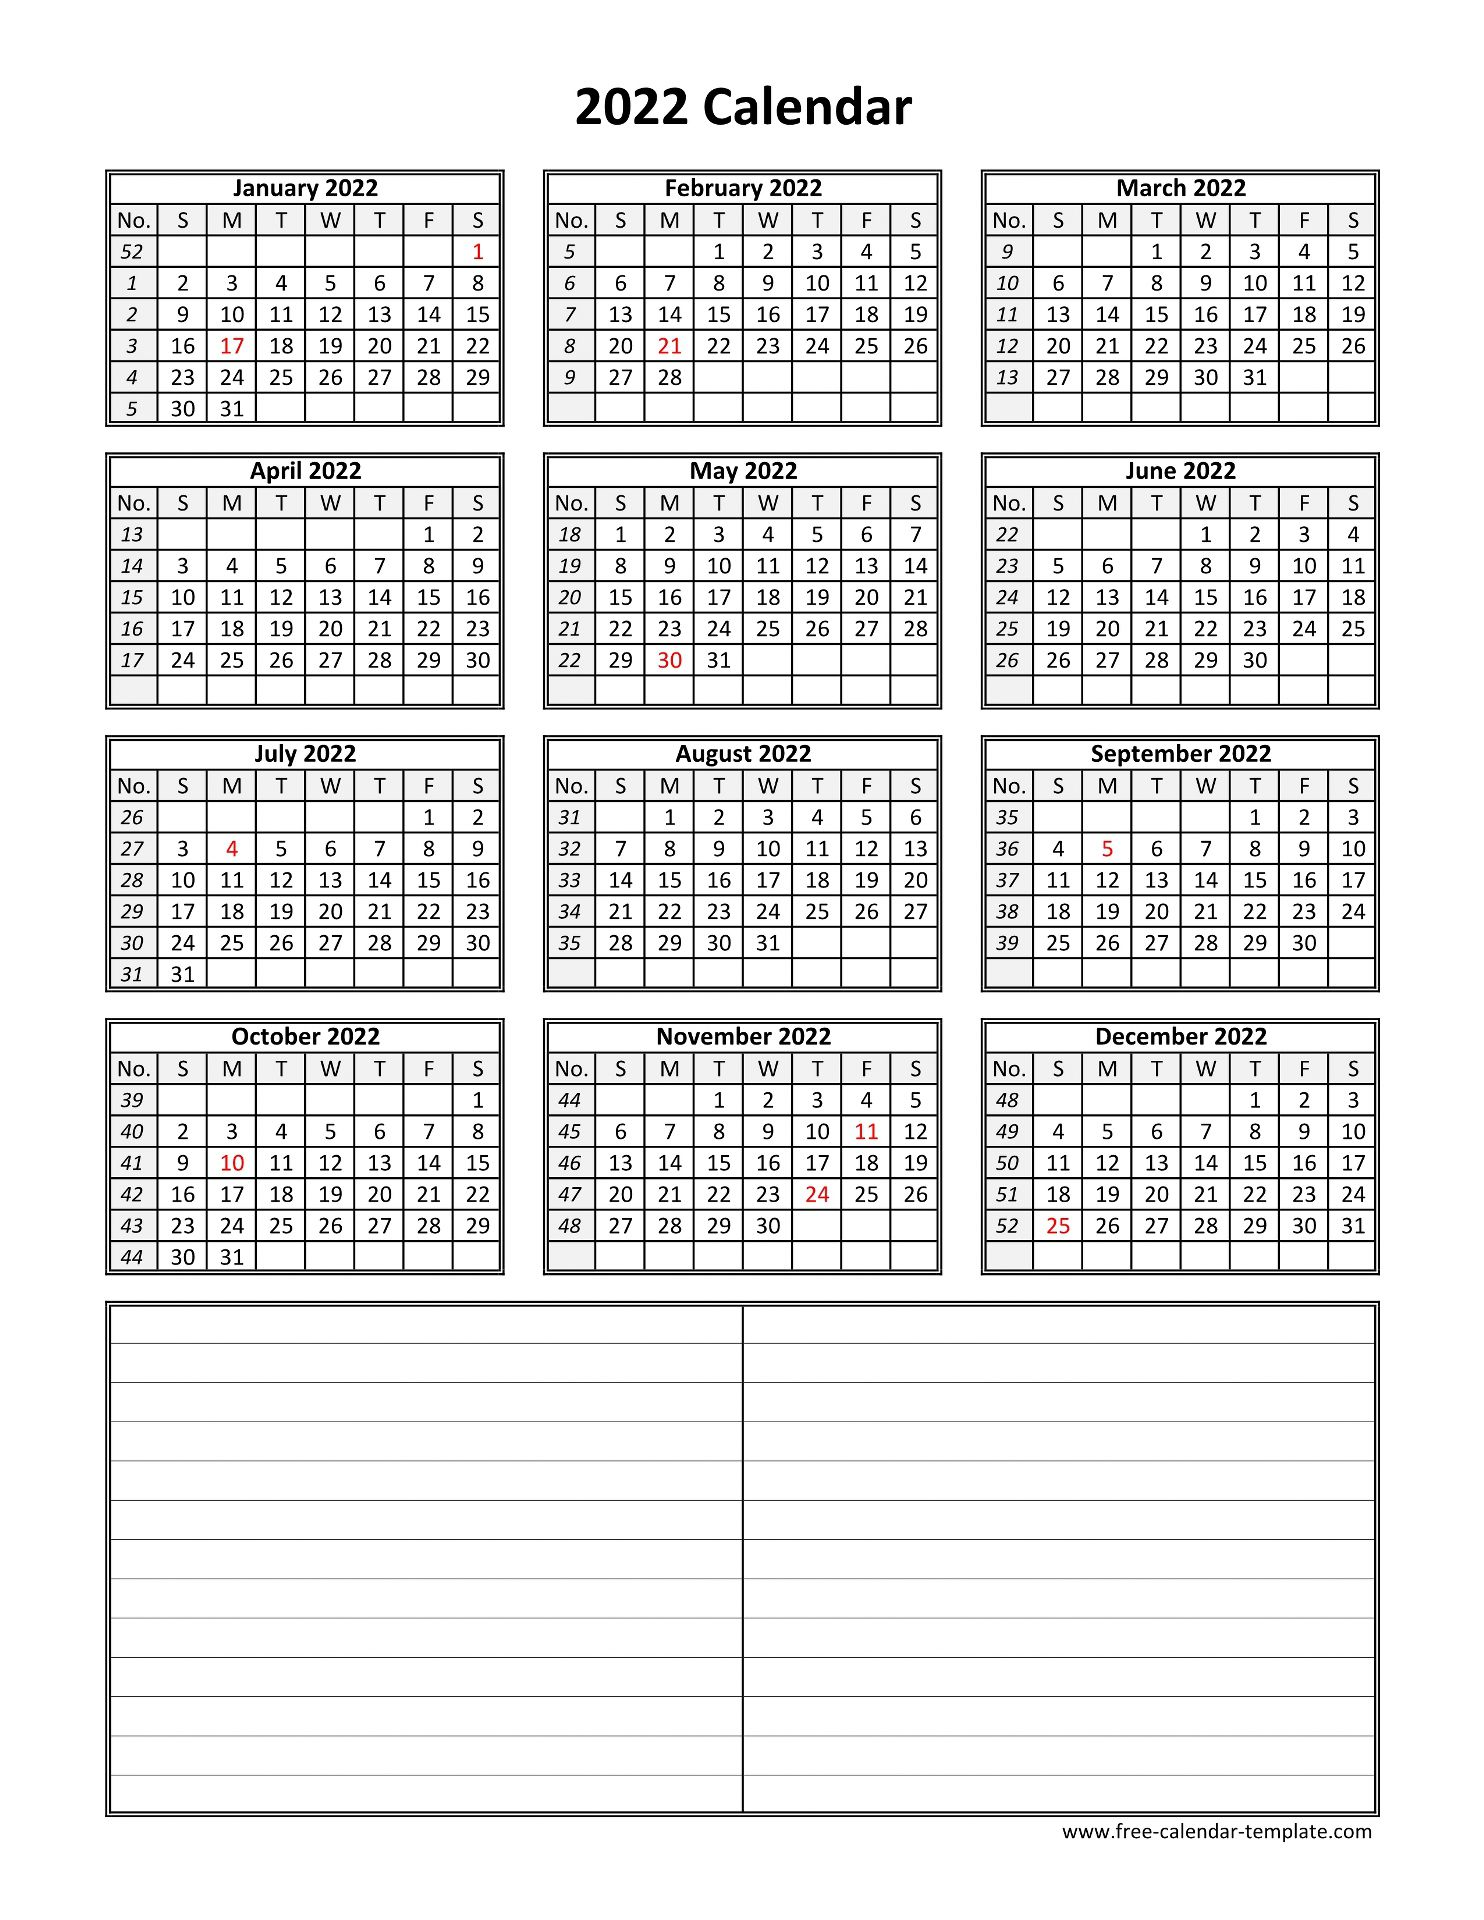 Yearly 2022 printable calendar with space for notes | Free ...